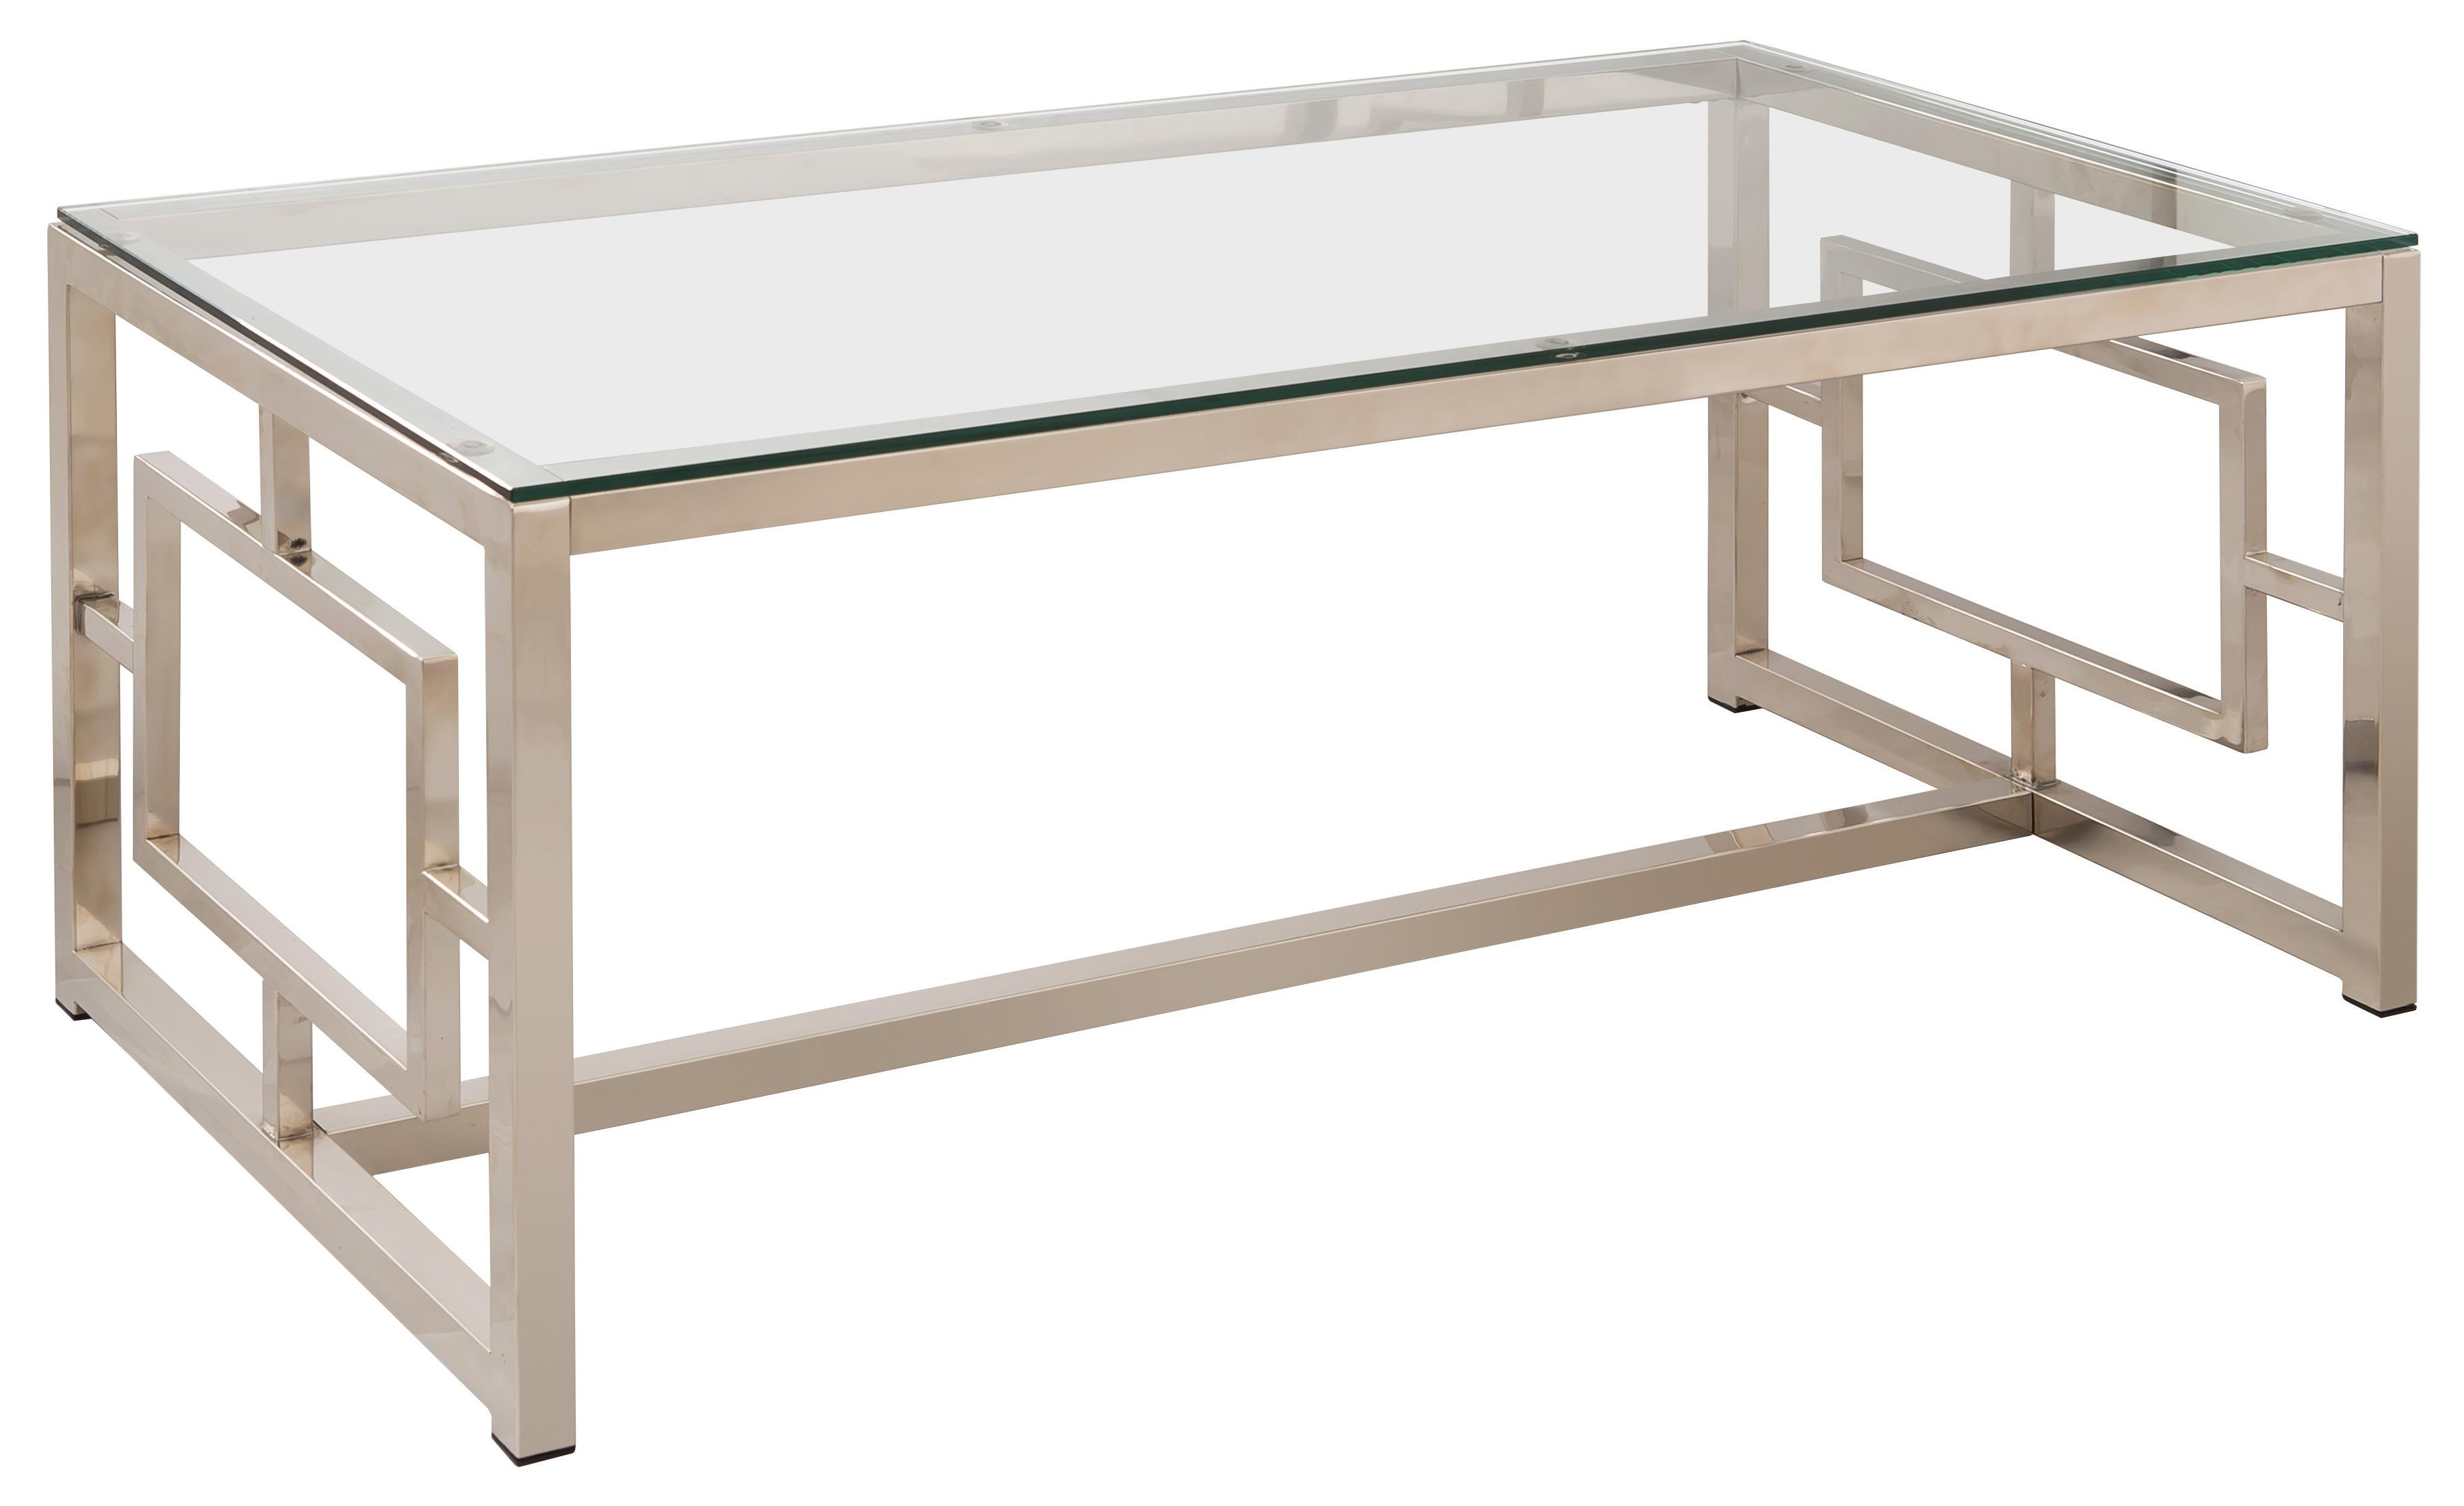 703738 contemporary metal coffee table with glass table top & geometric motif